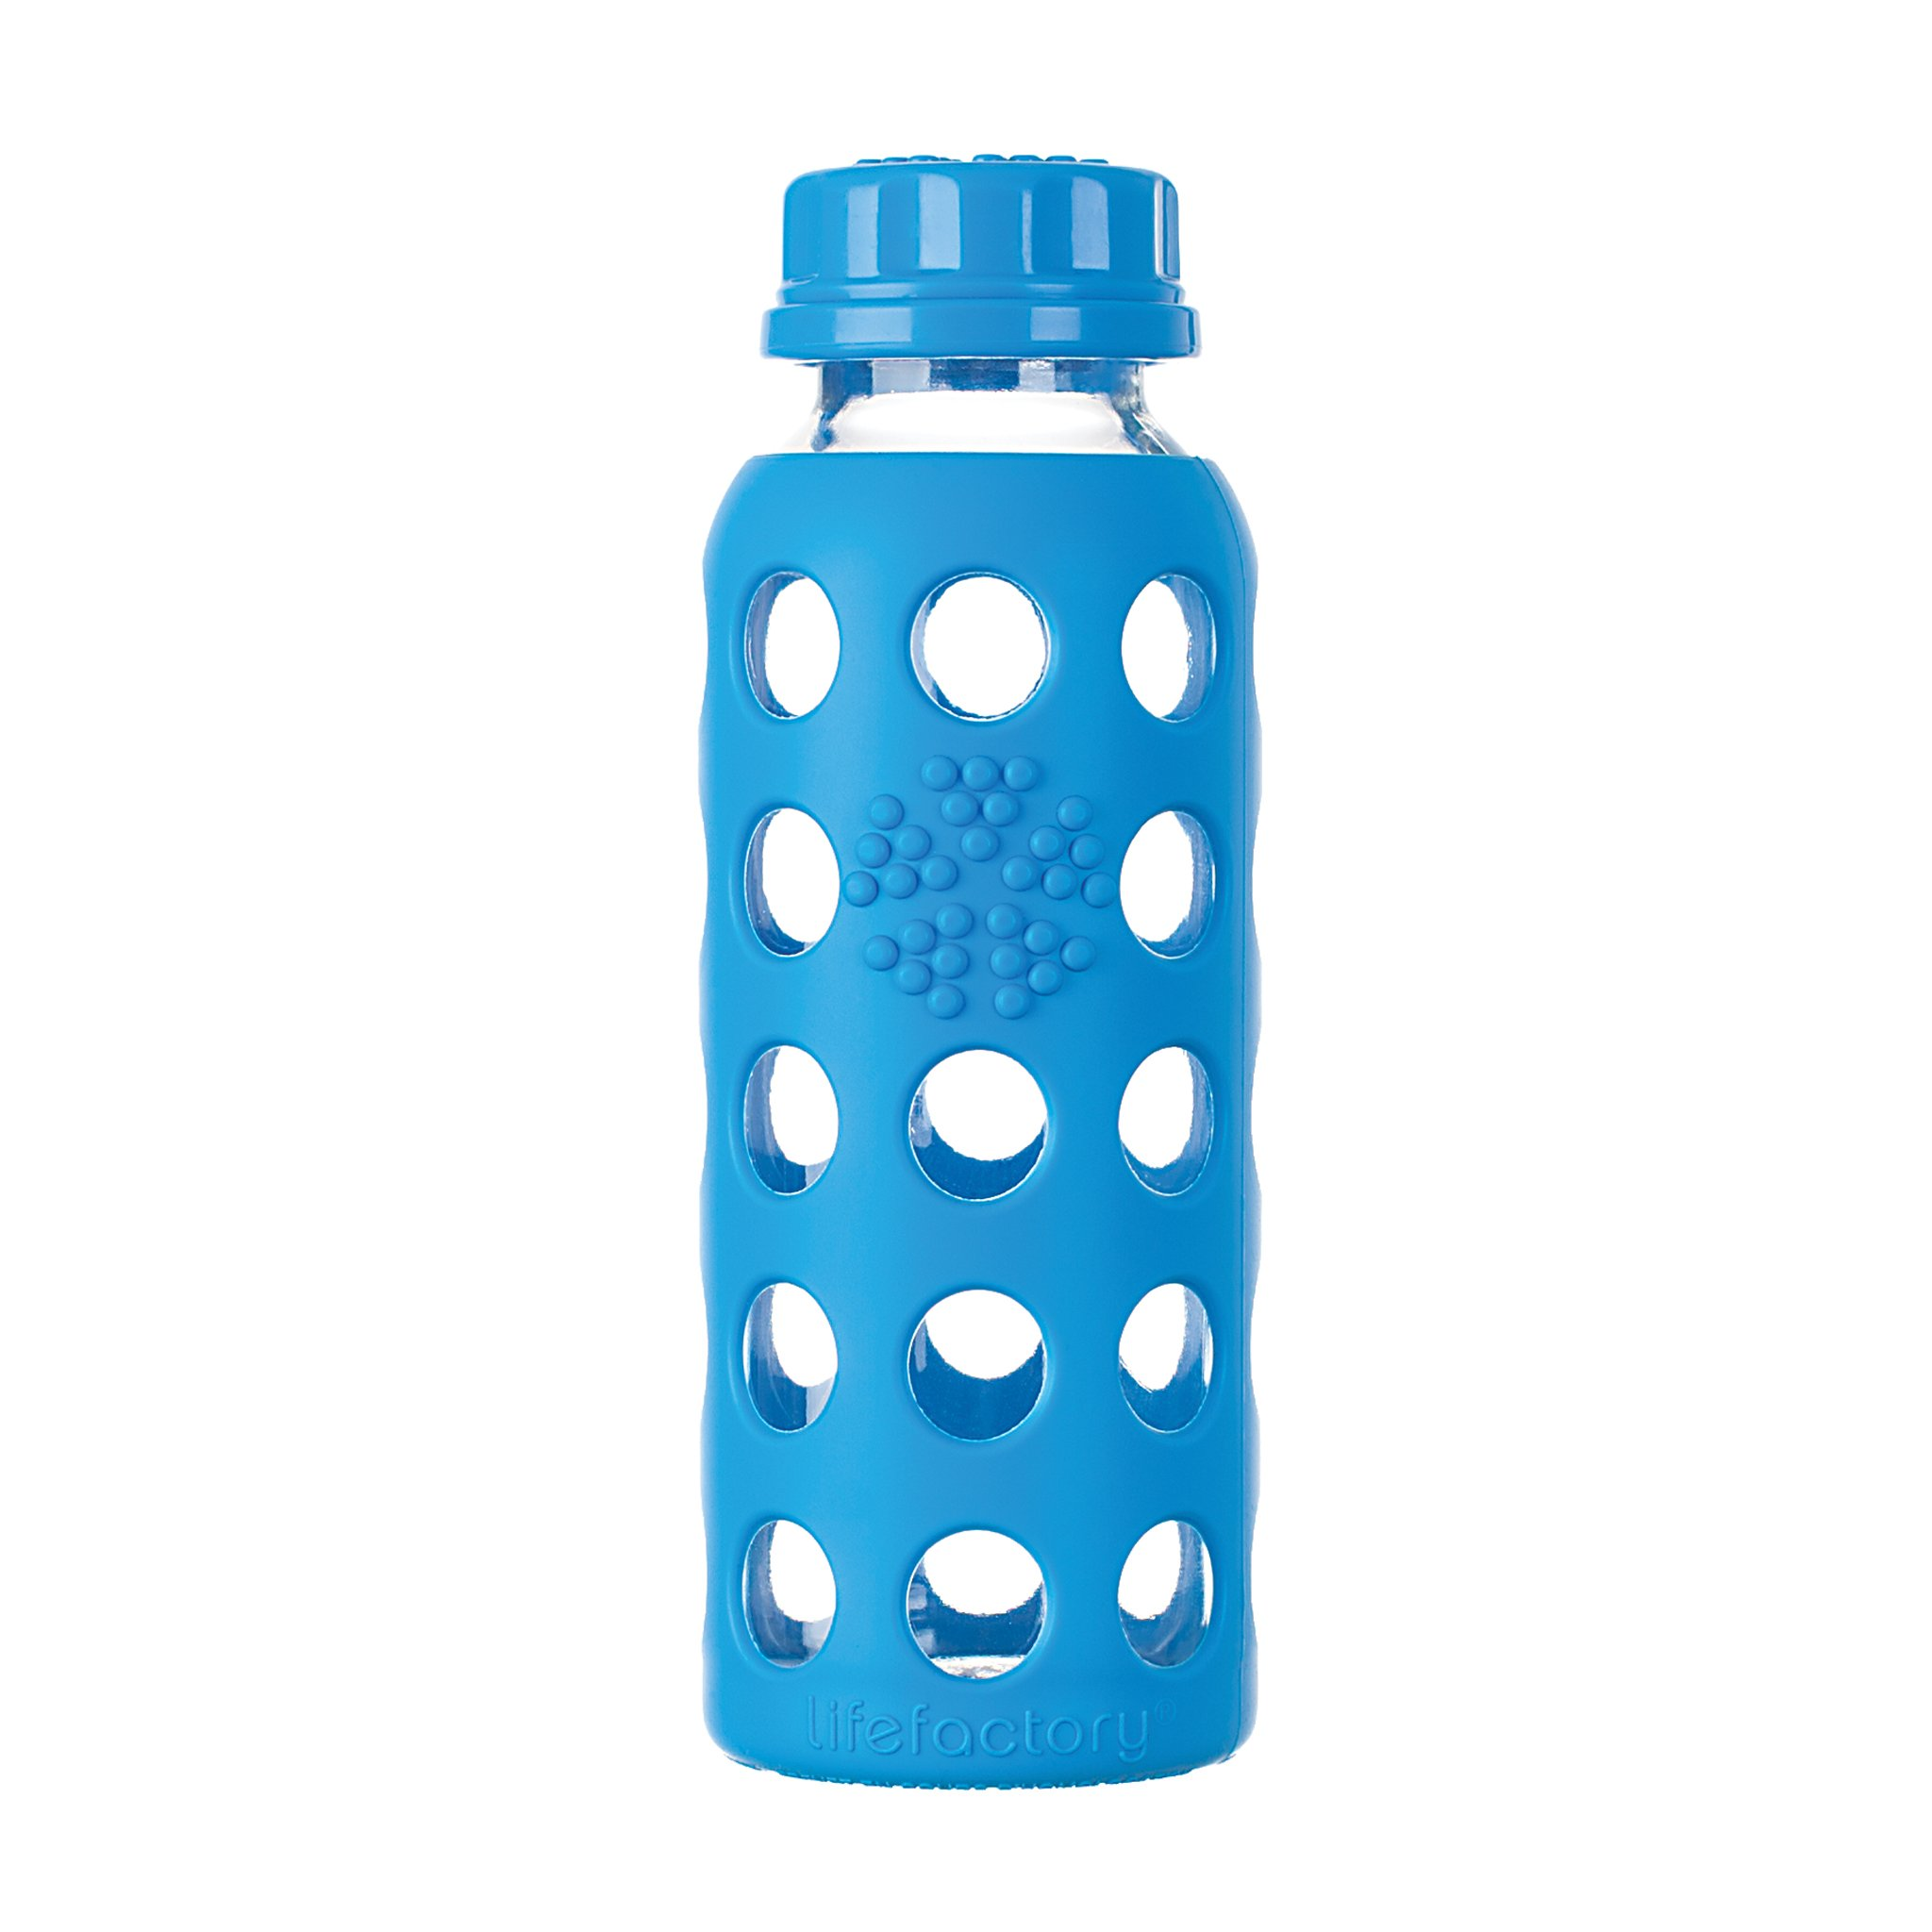 Lifefactory 9-Ounce BPA-Free Glass Water Bottle with Flat Cap and Silicone Sleeve, Ocean